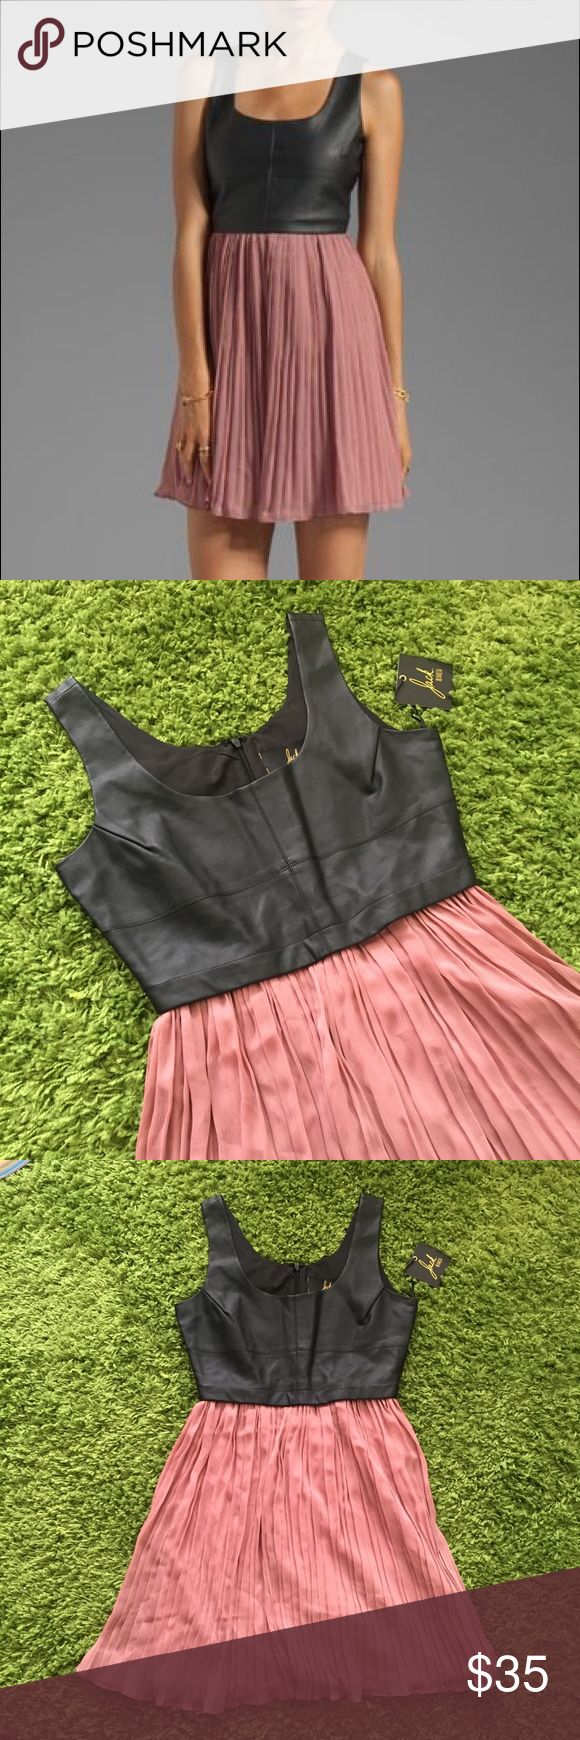 New!!! Jack BB Dakota pink black leather dress Jack BB Dakota pink black leather dress Jack by BB Dakota Dresses Mini